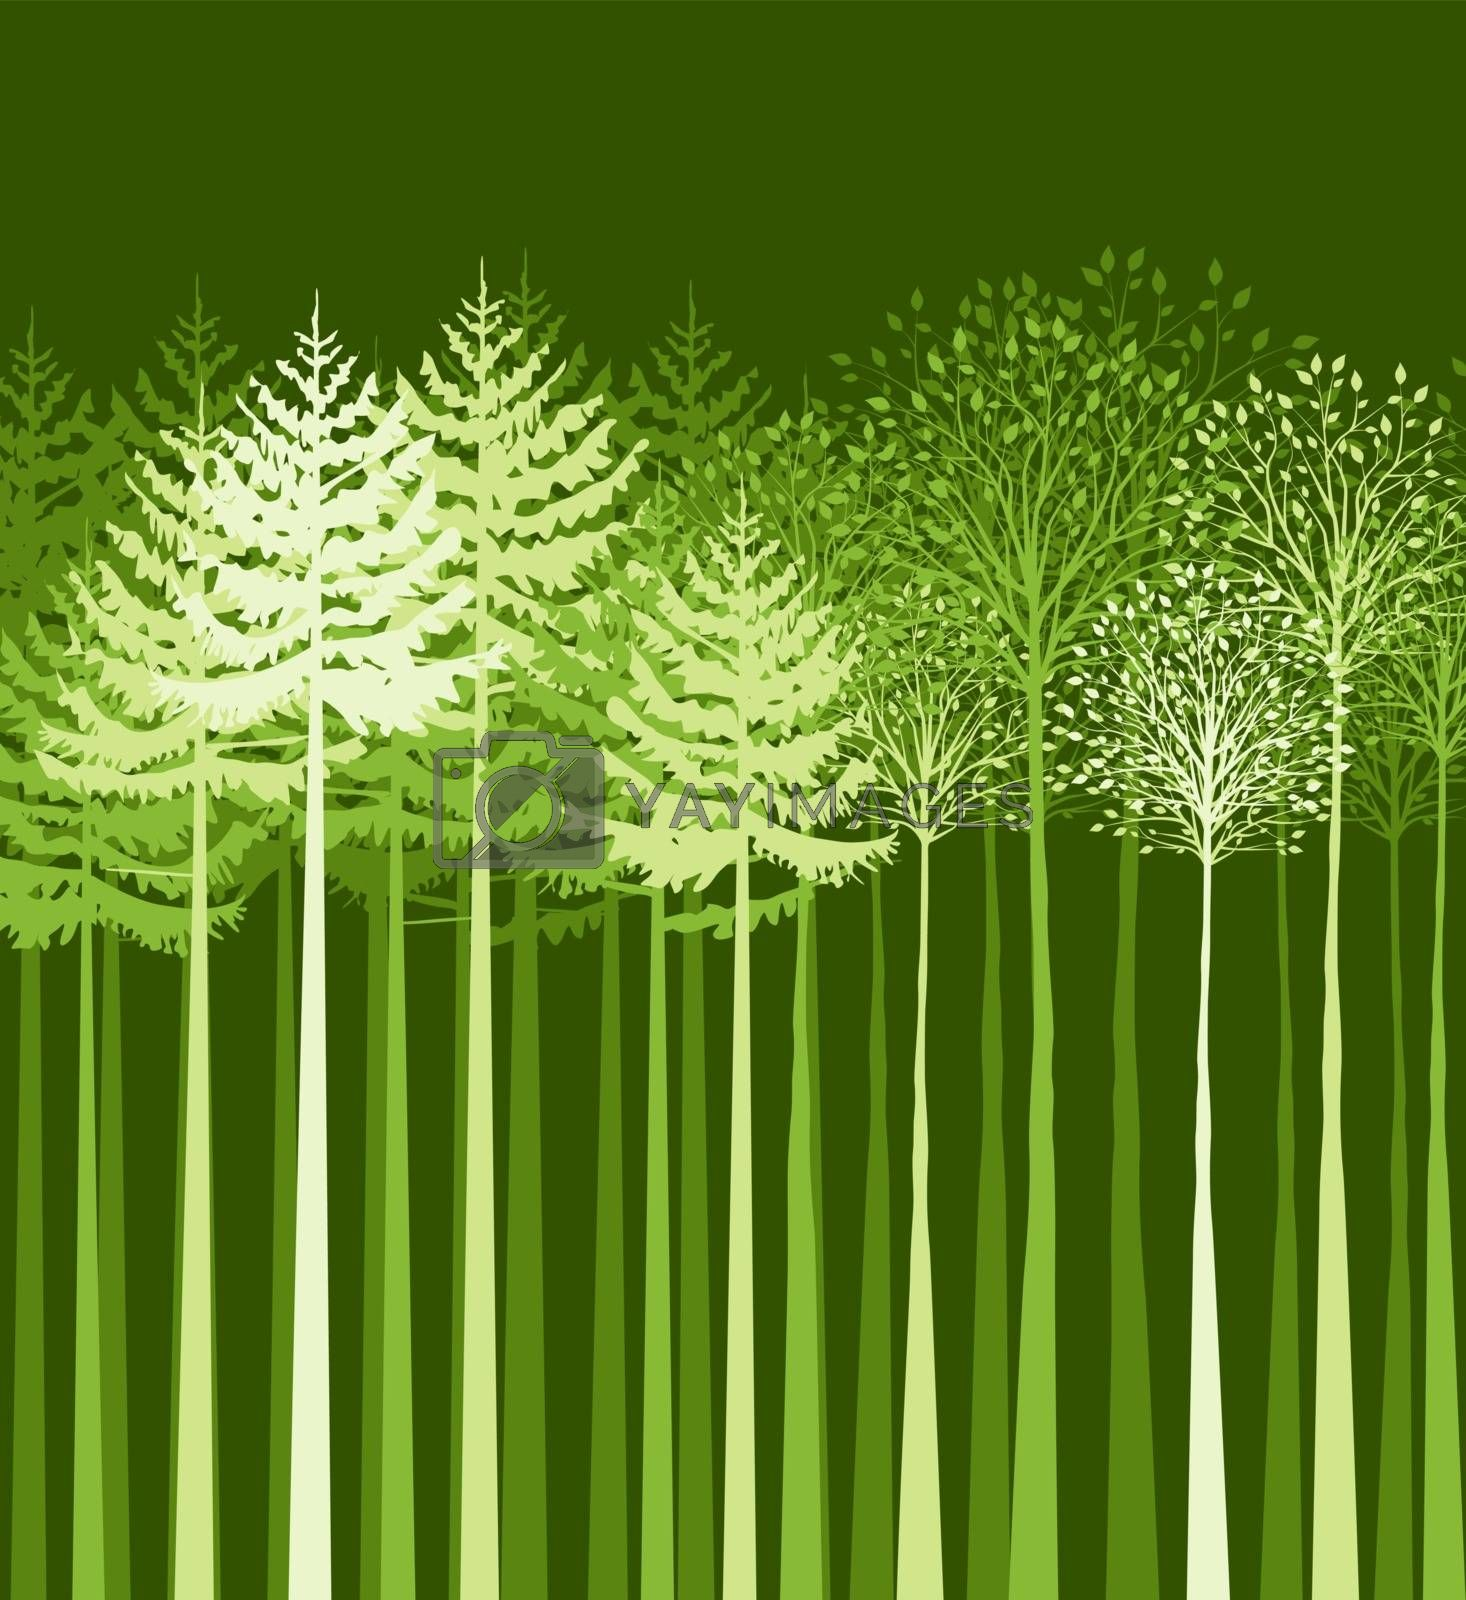 Vectors background landscape with trees, mixed forest